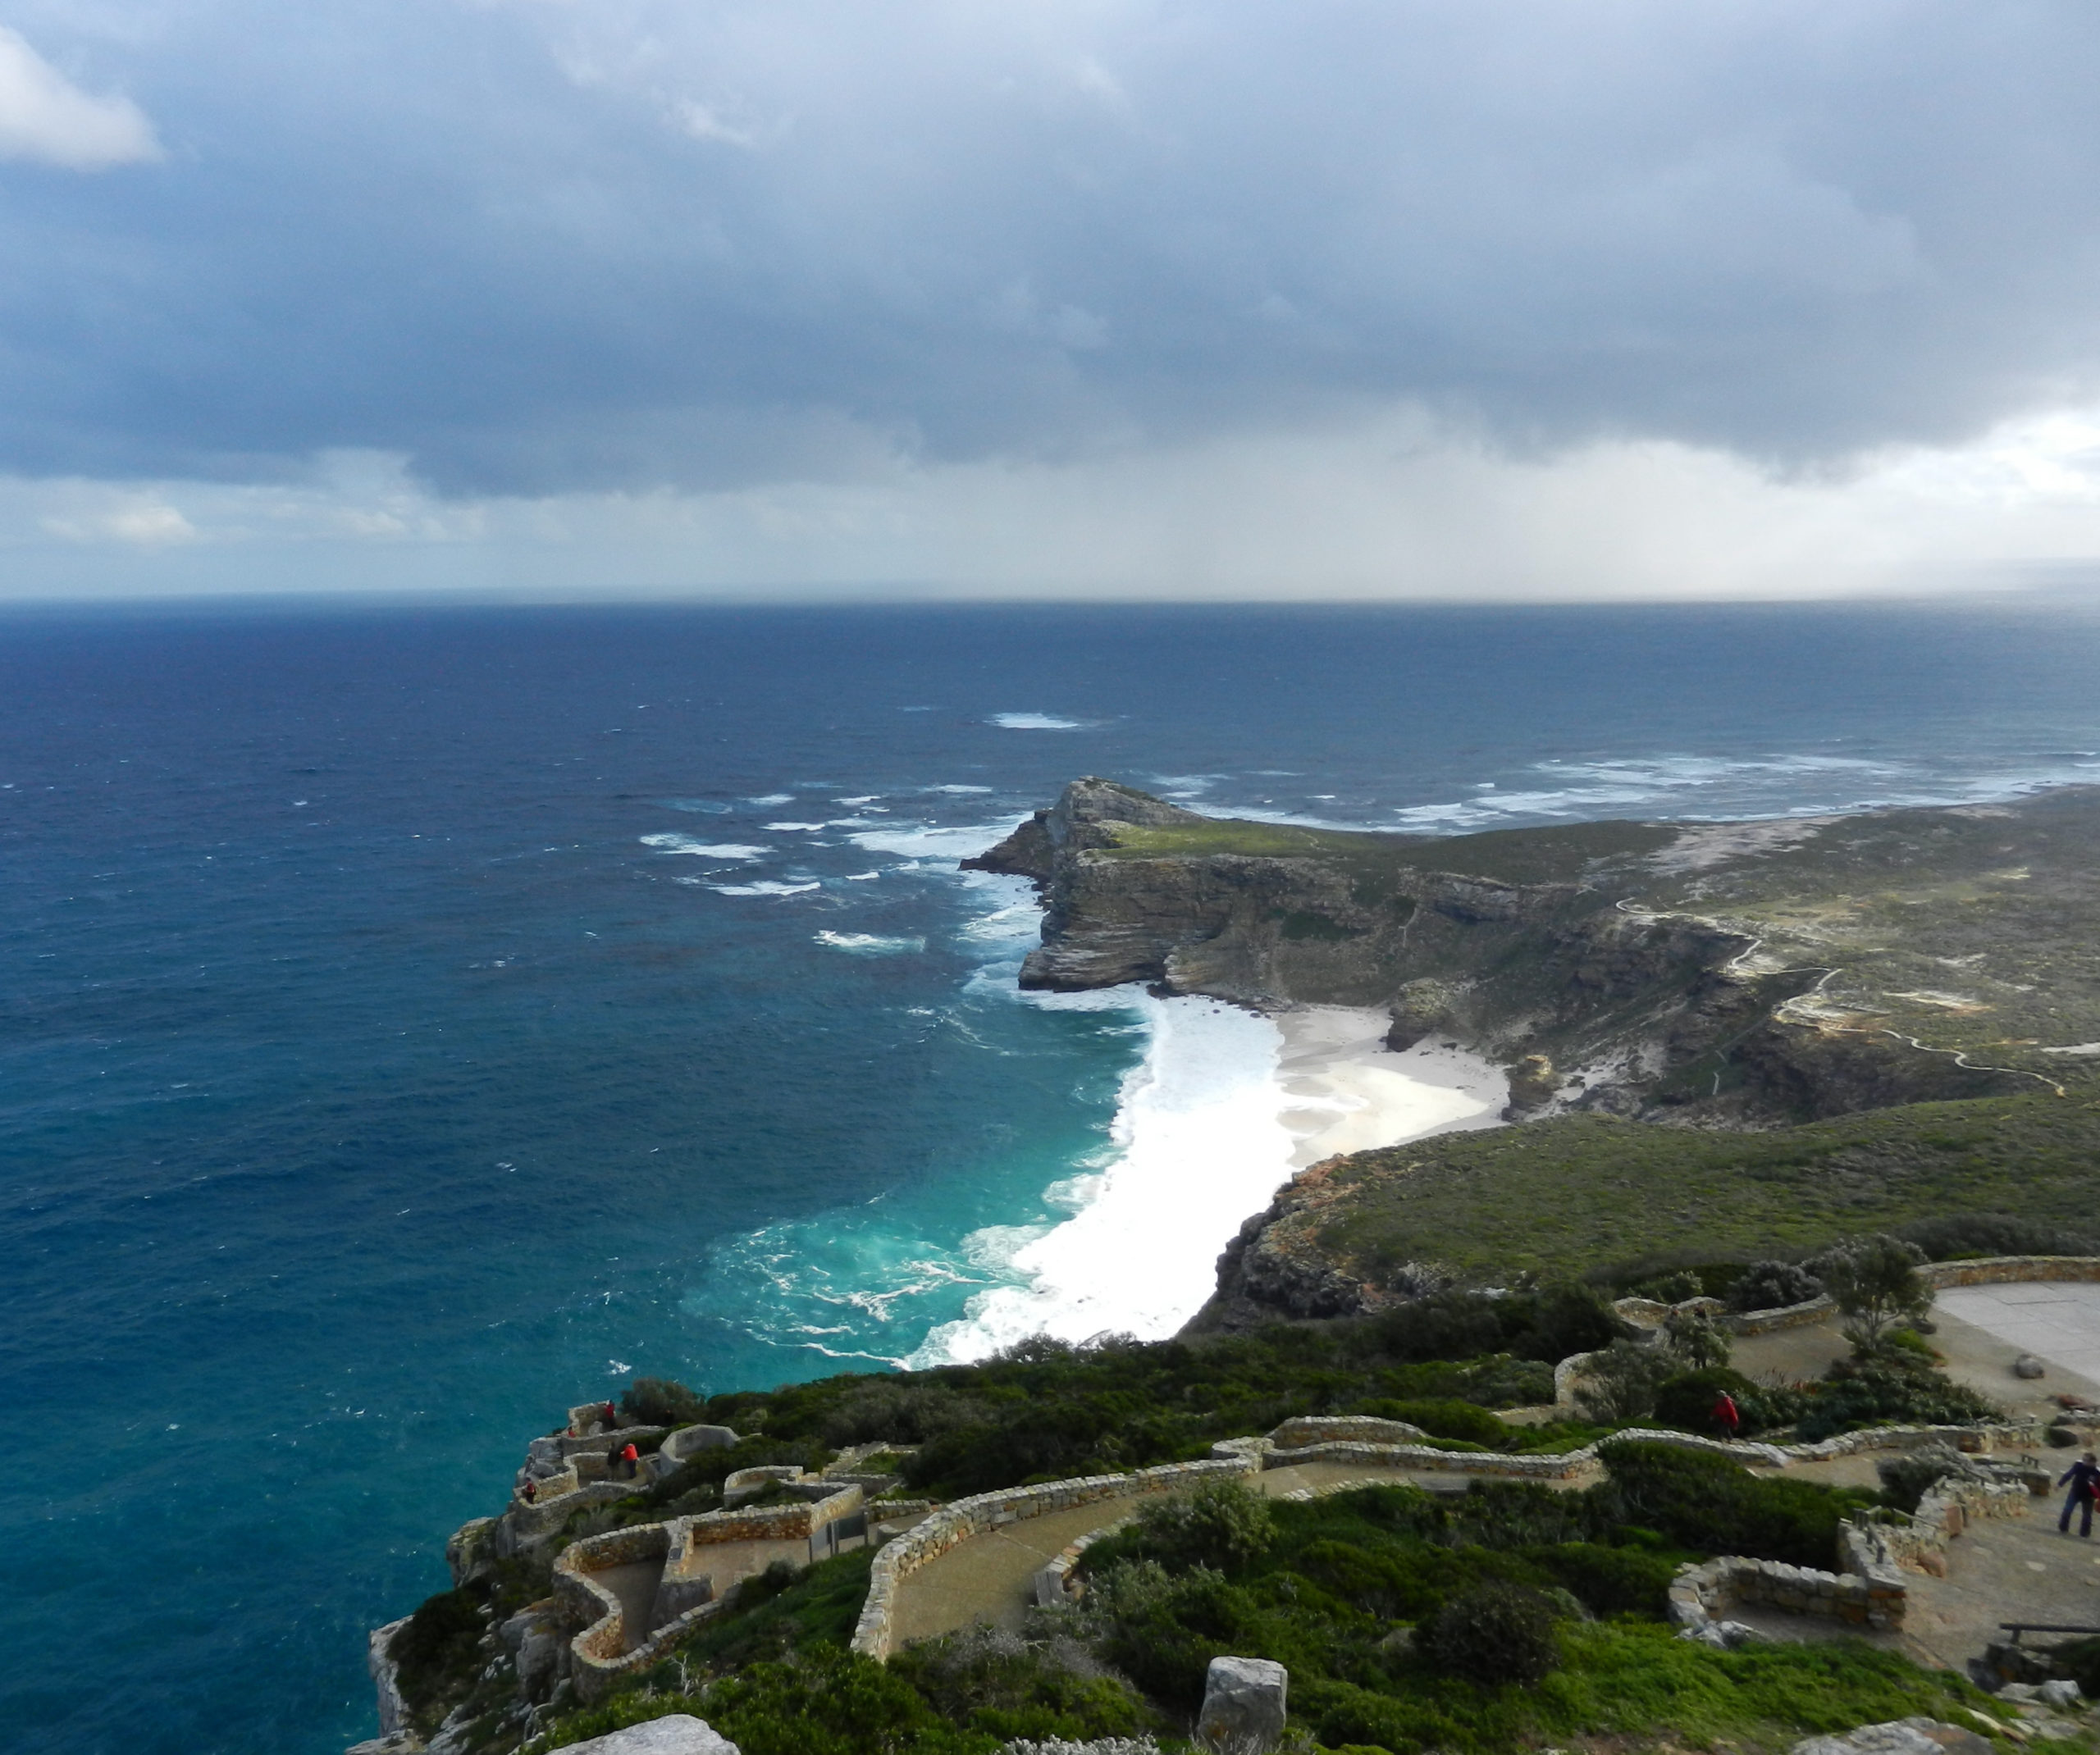 View of the coastline at Cape Point, South Africa. Image Cindy Dykman